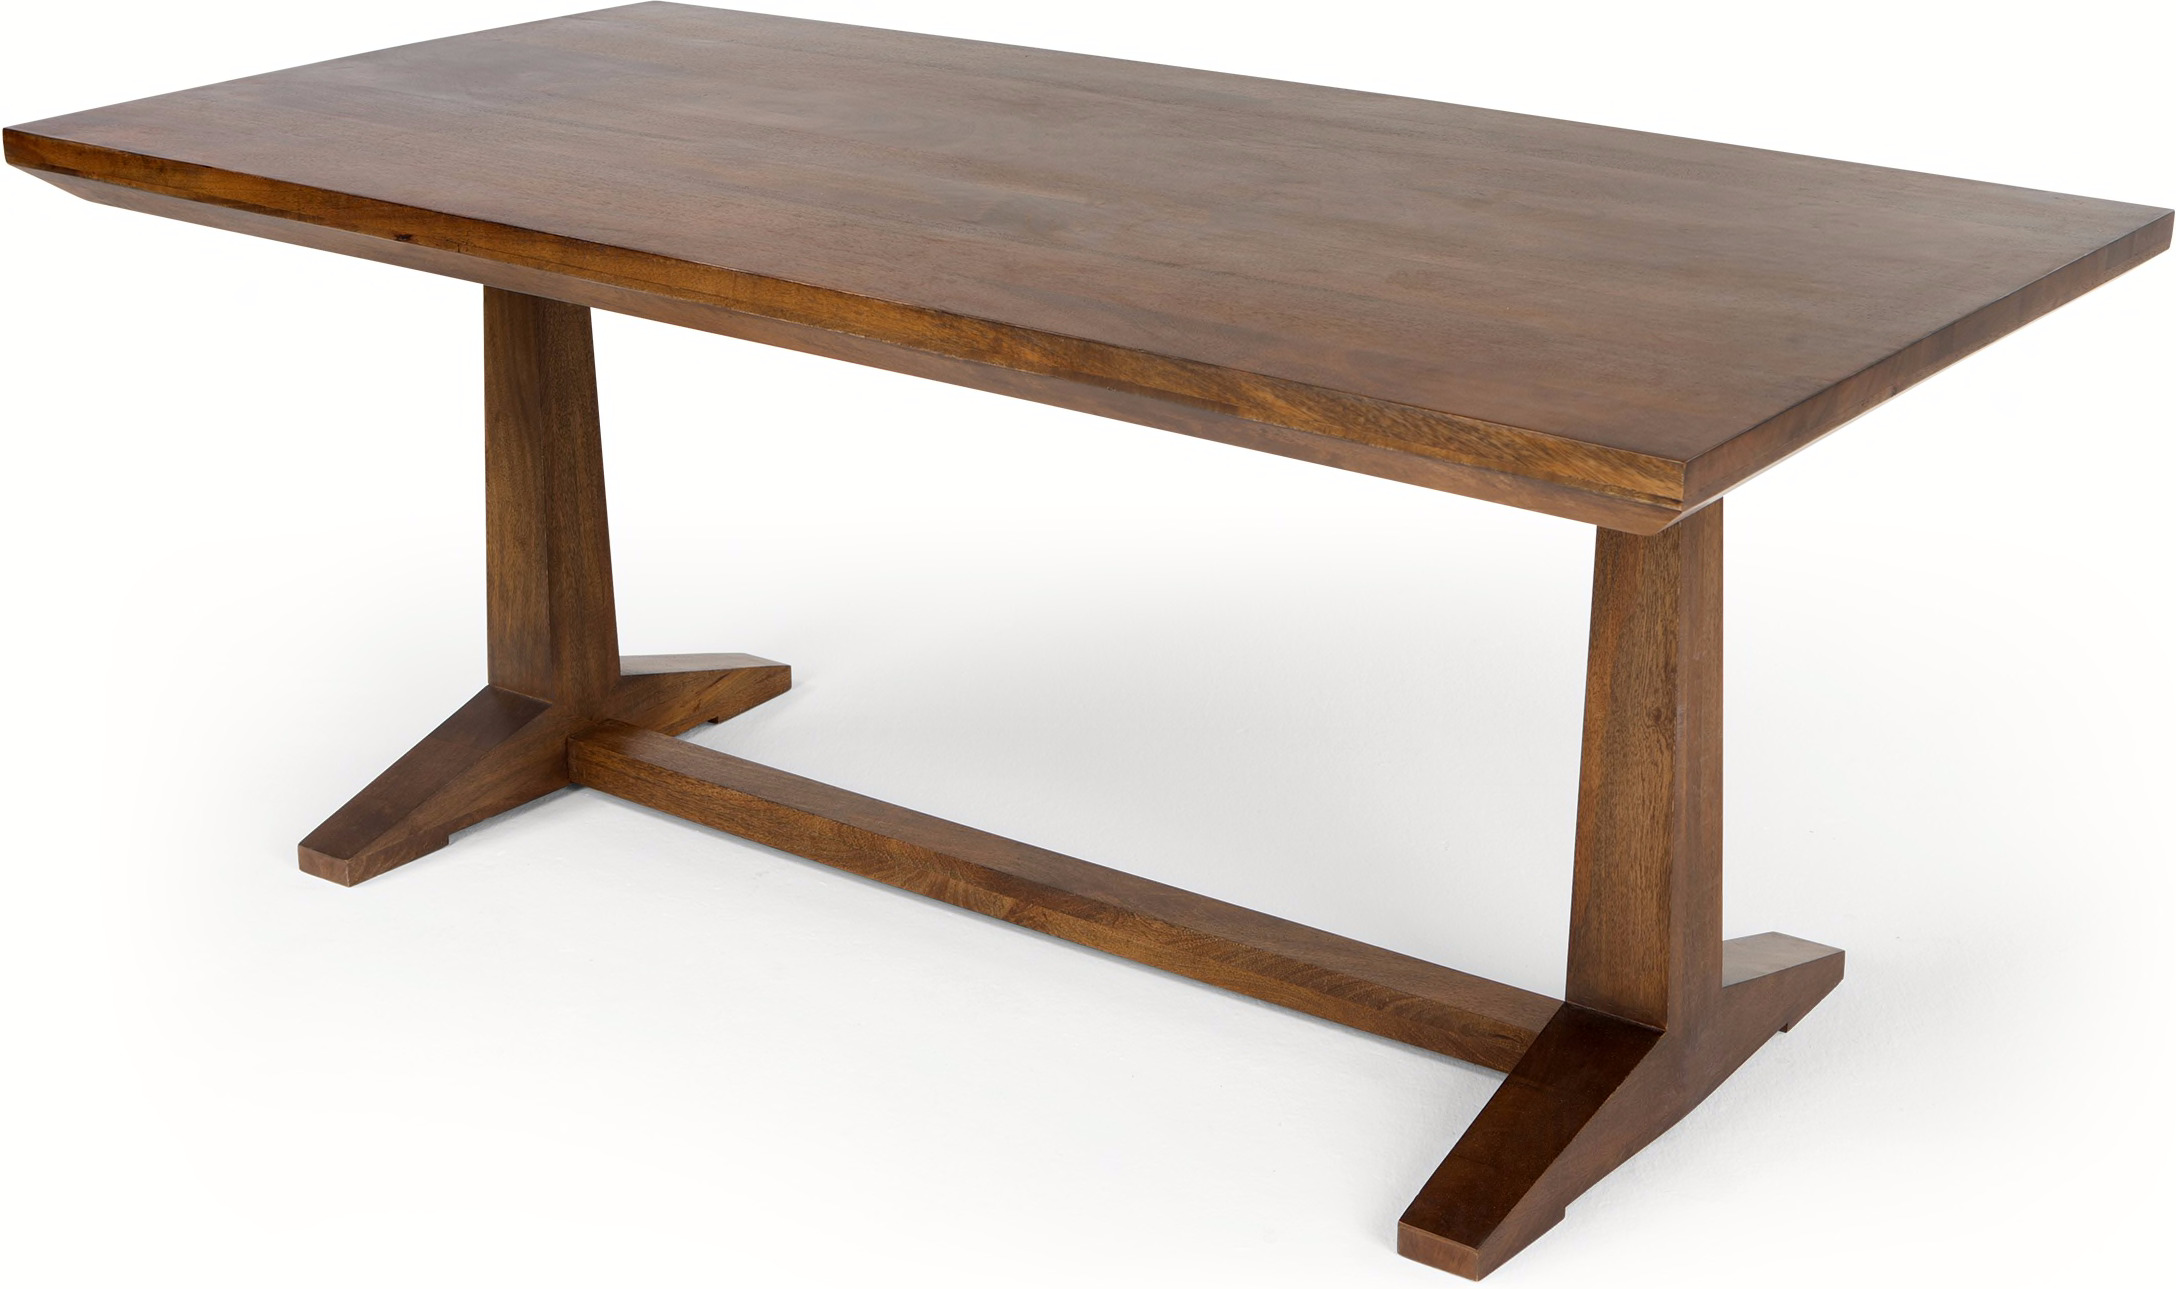 Cheap mango wood dining table best uk deals on tables to for Mango wood dining table